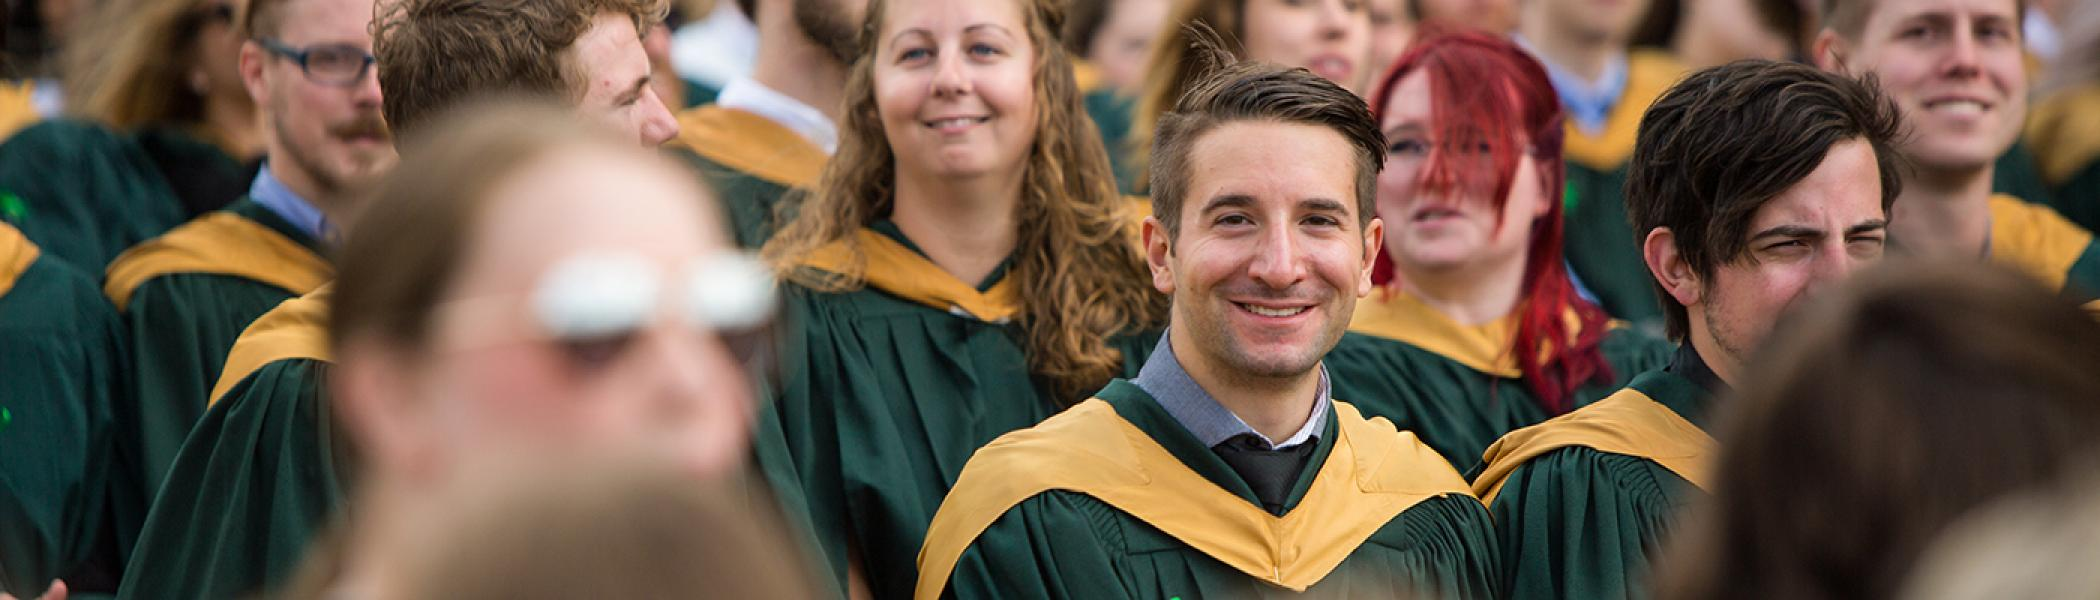 Male student in crowd of graduates smiling at the camera and wearing a green gown with gold trim on the hood.